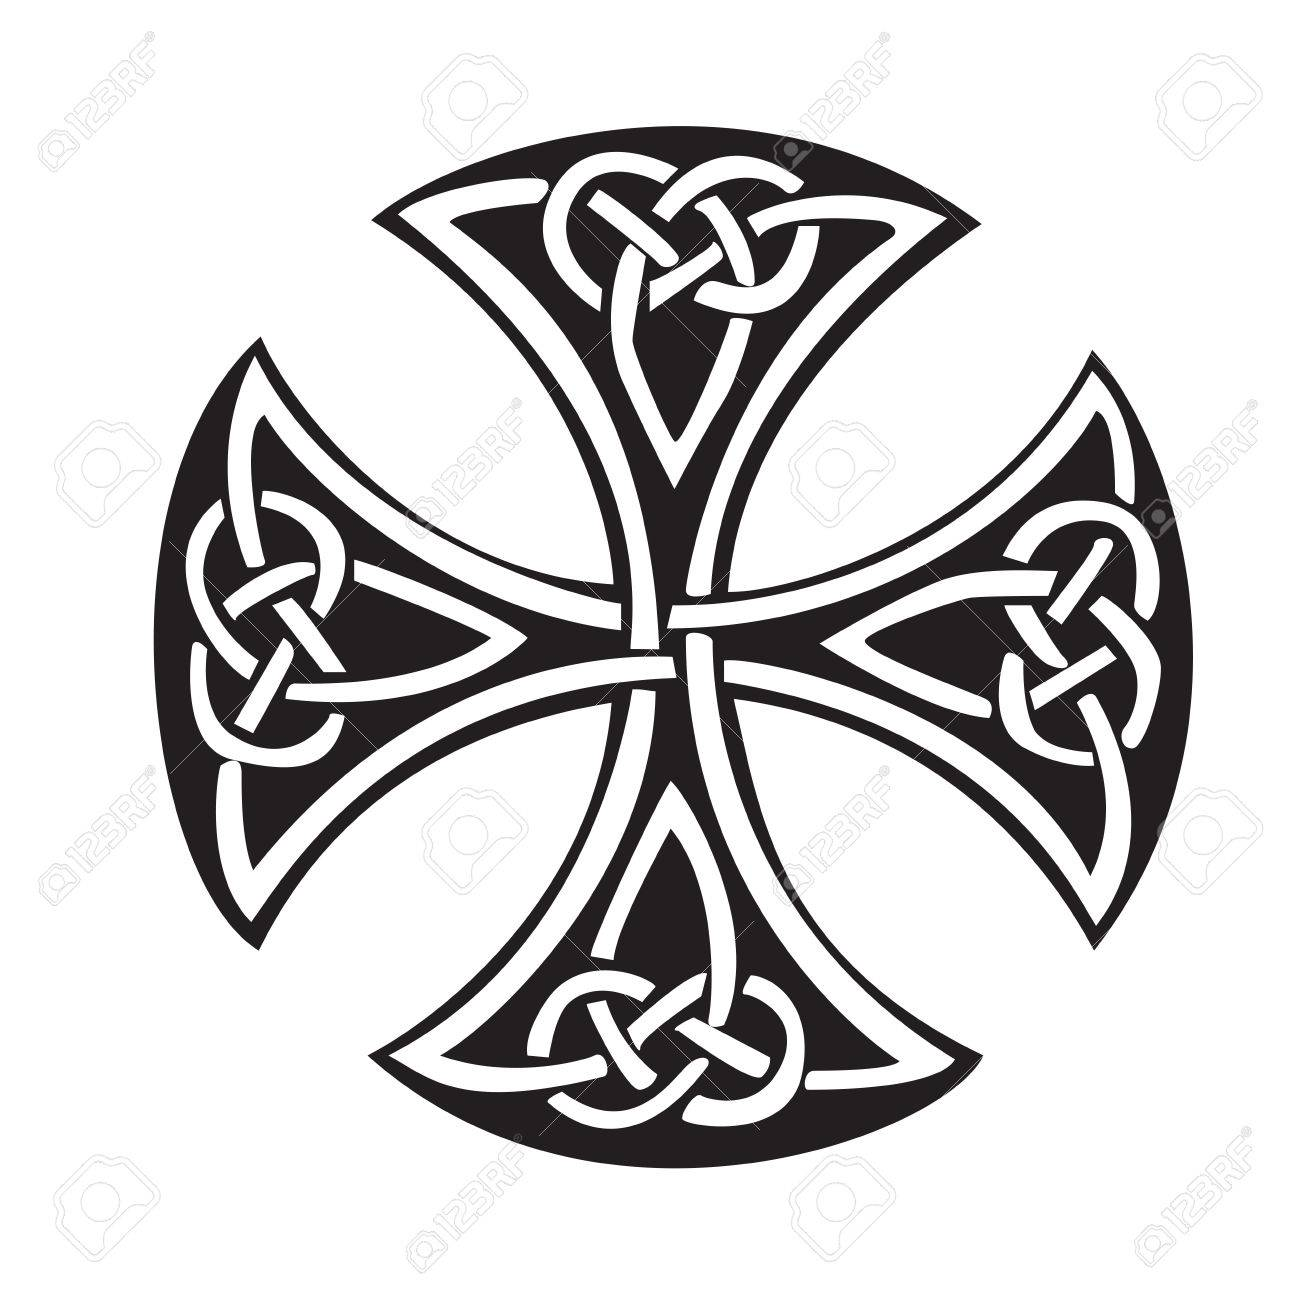 celtic cross royalty free cliparts vectors and stock illustration rh 123rf com vector celtic cross meaning free celtic cross vector designs